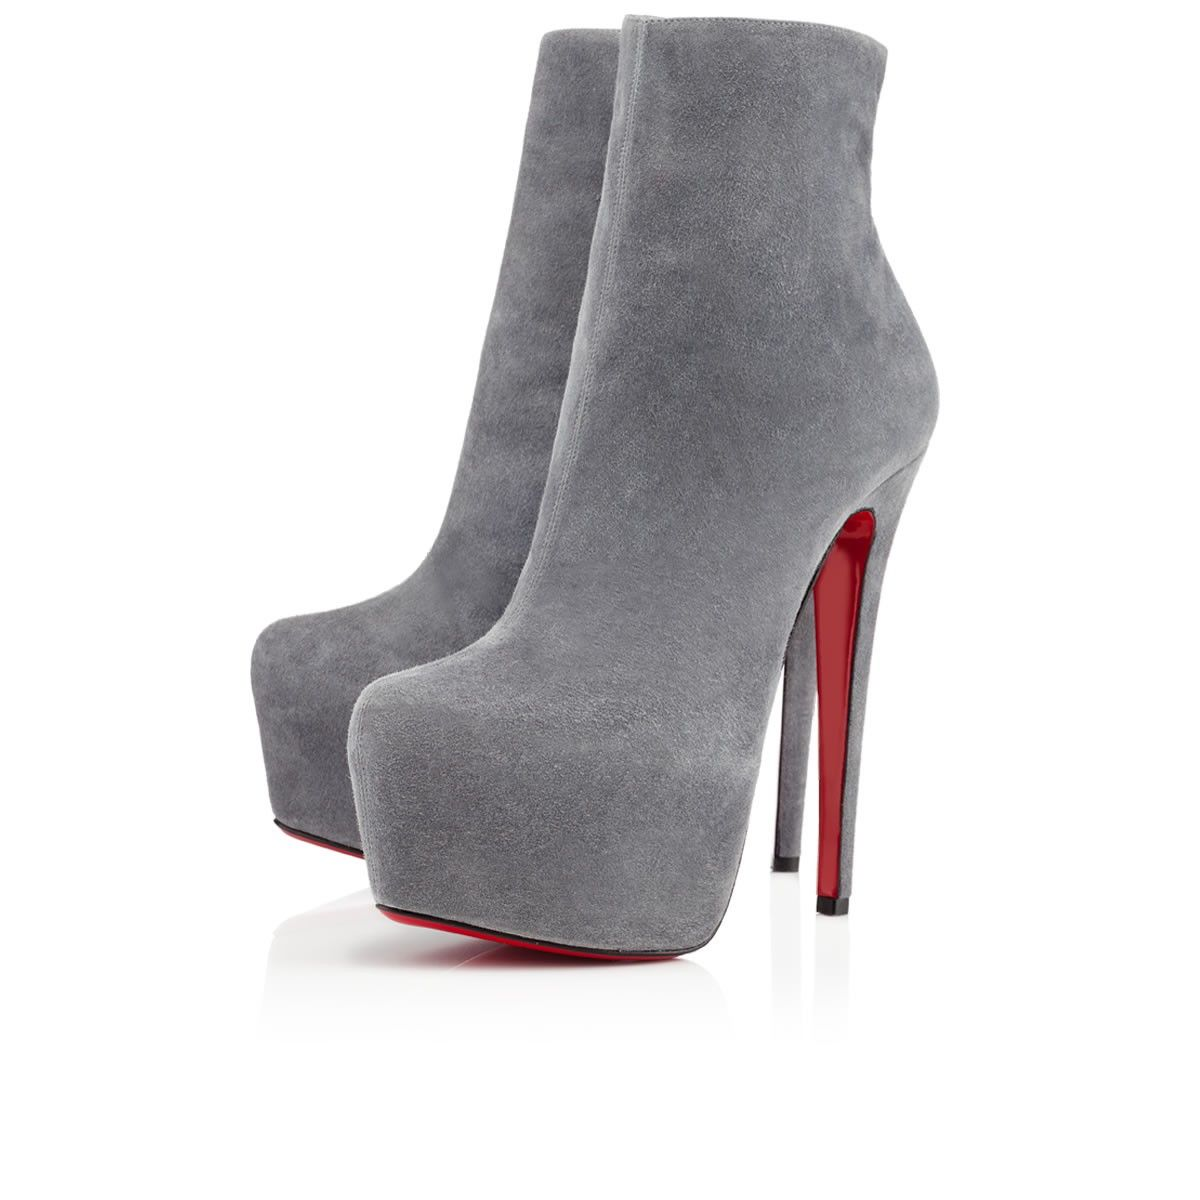 CHRISTIAN LOUBOUTIN Tacones outlete